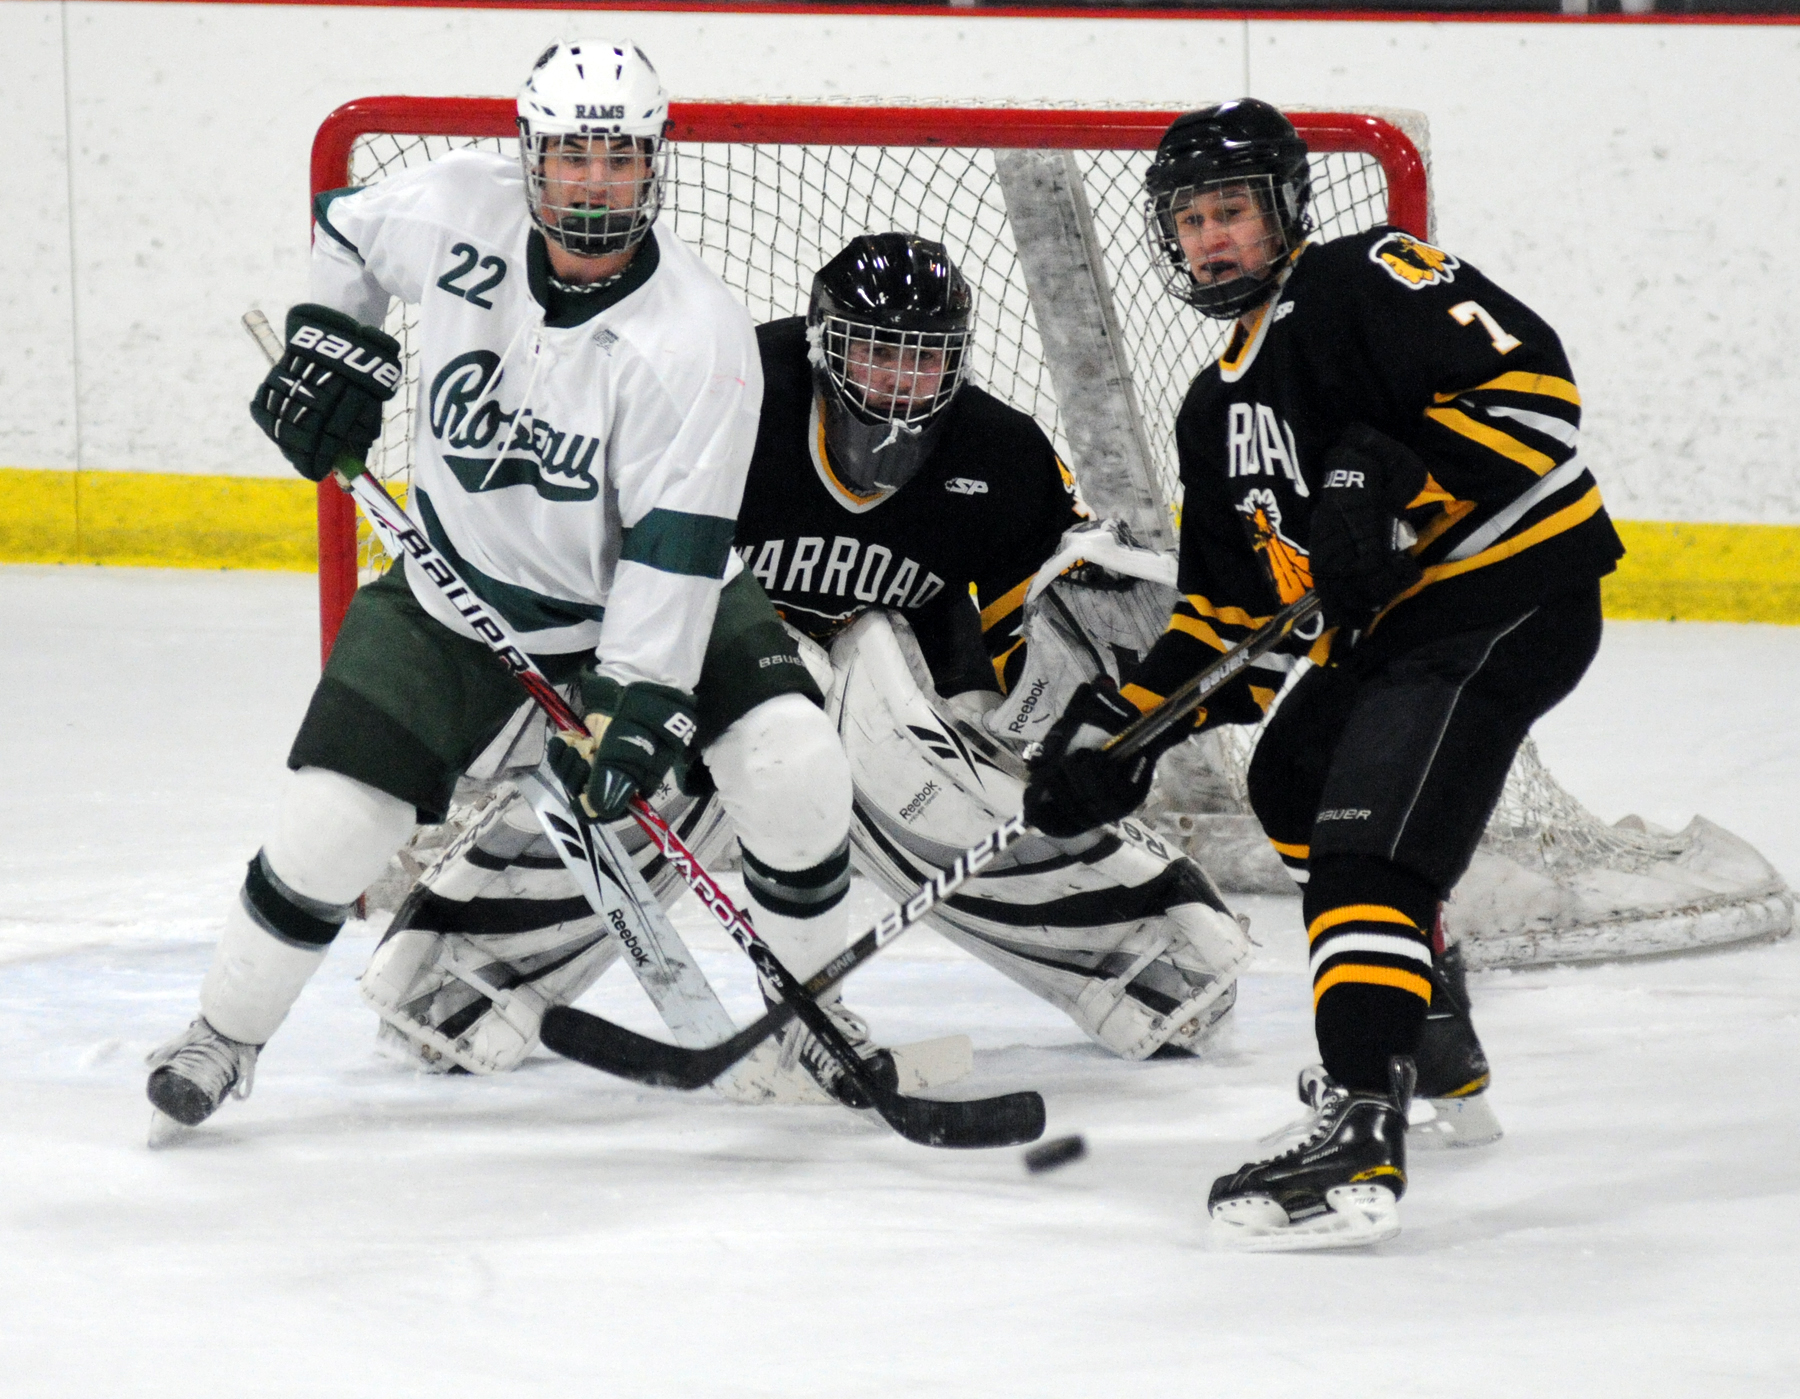 MN H.S.: NBC Sports Doing A Story On Roseau-Warroad Rivalry